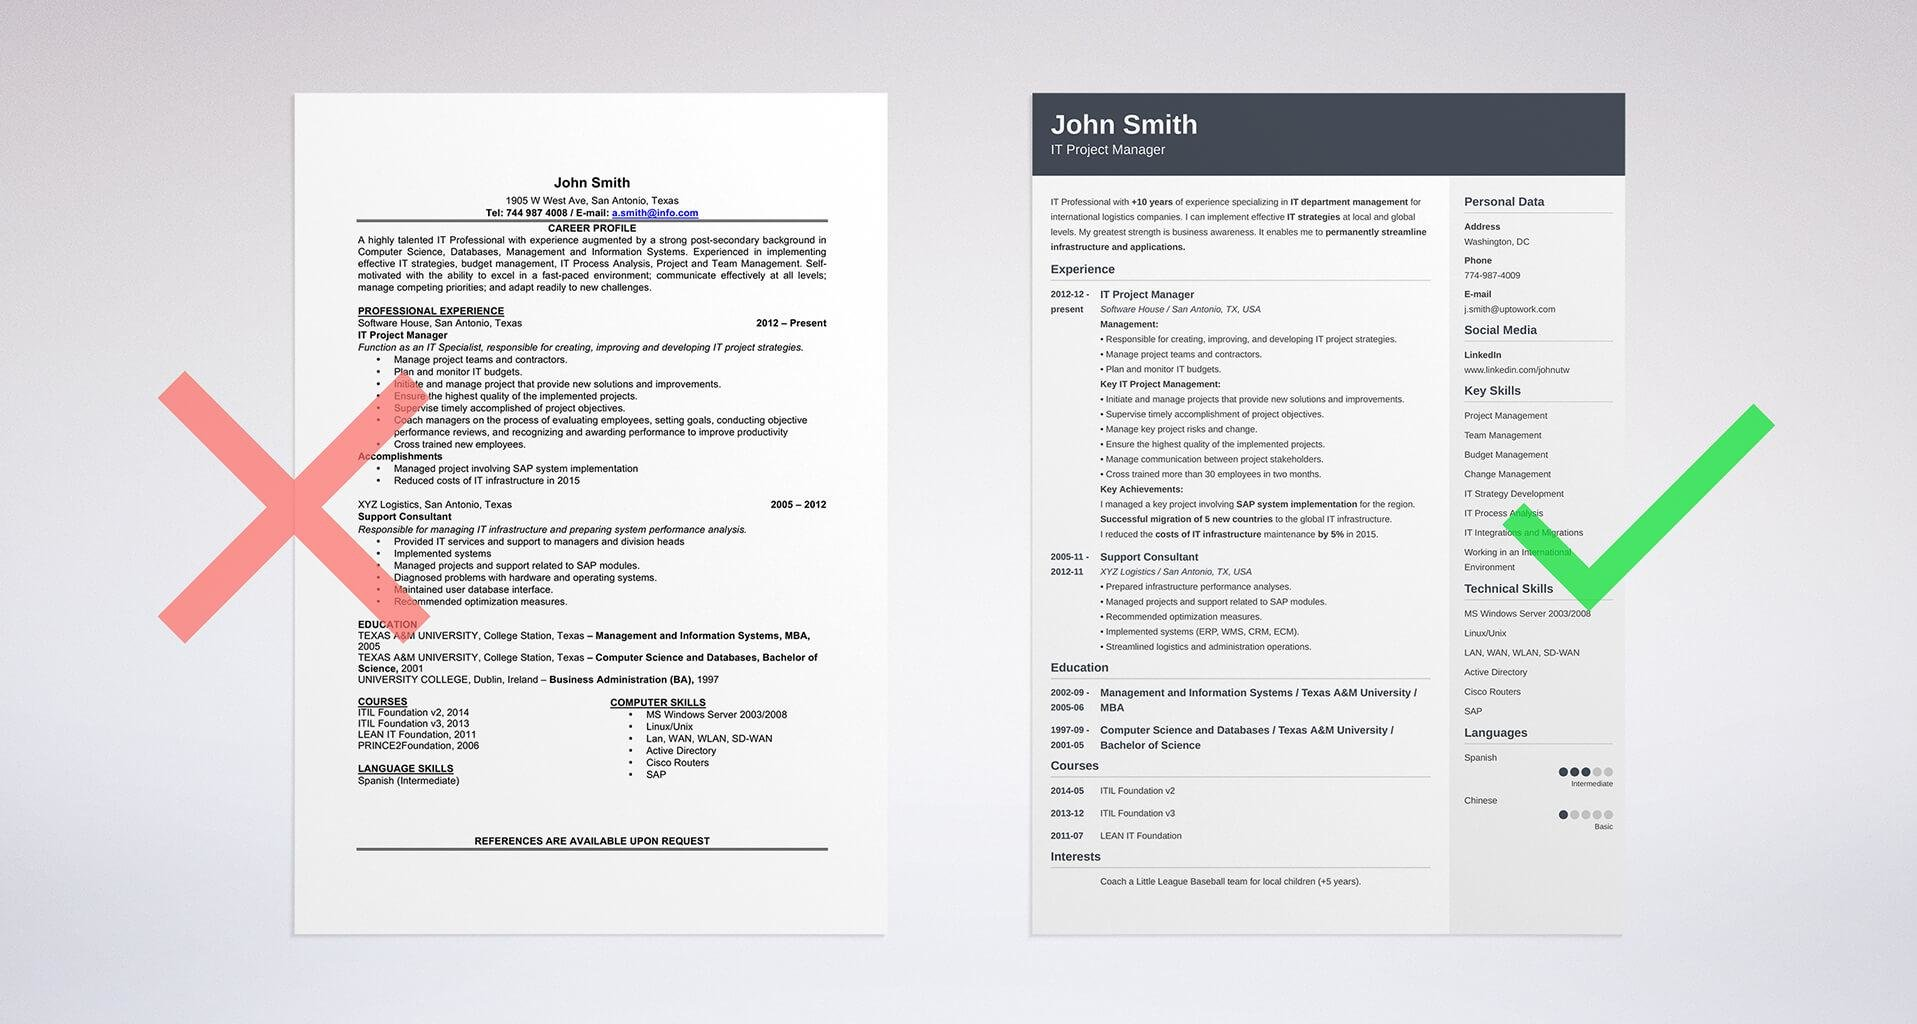 best resume format professional samples the for experienced example of formats human Resume The Best Resume Format For Experienced